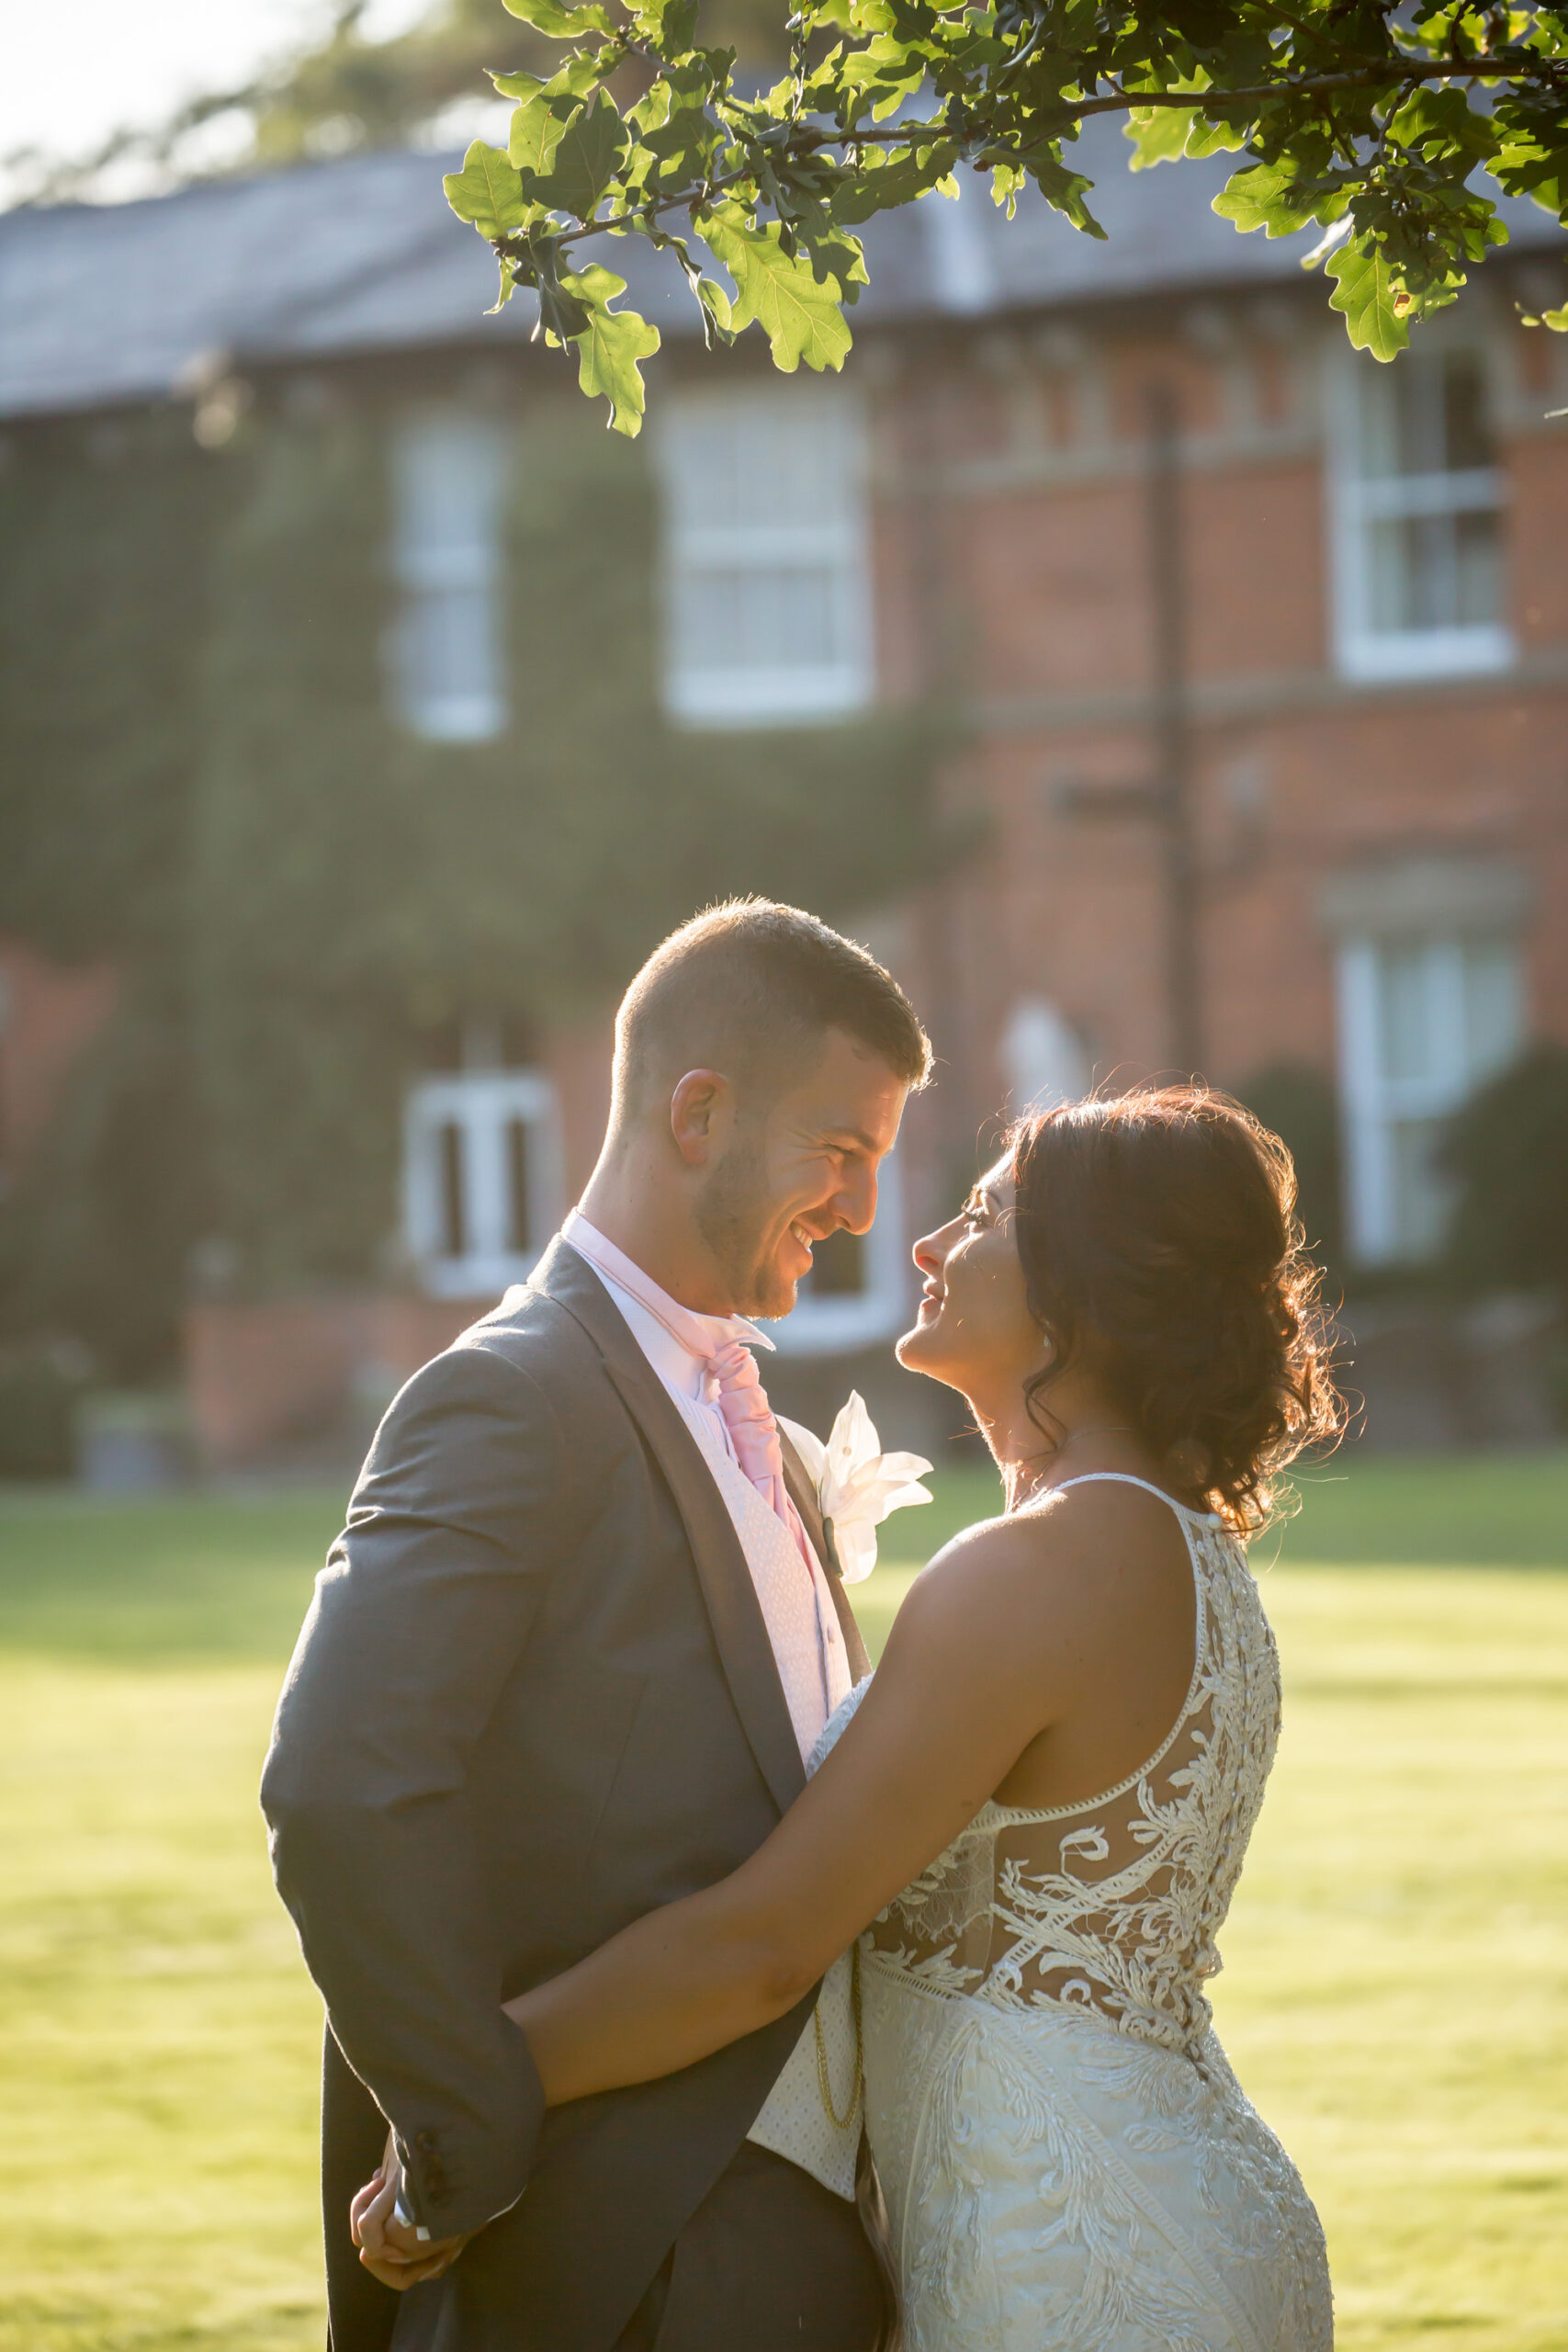 creative wedding photography at mitton hall in whalley